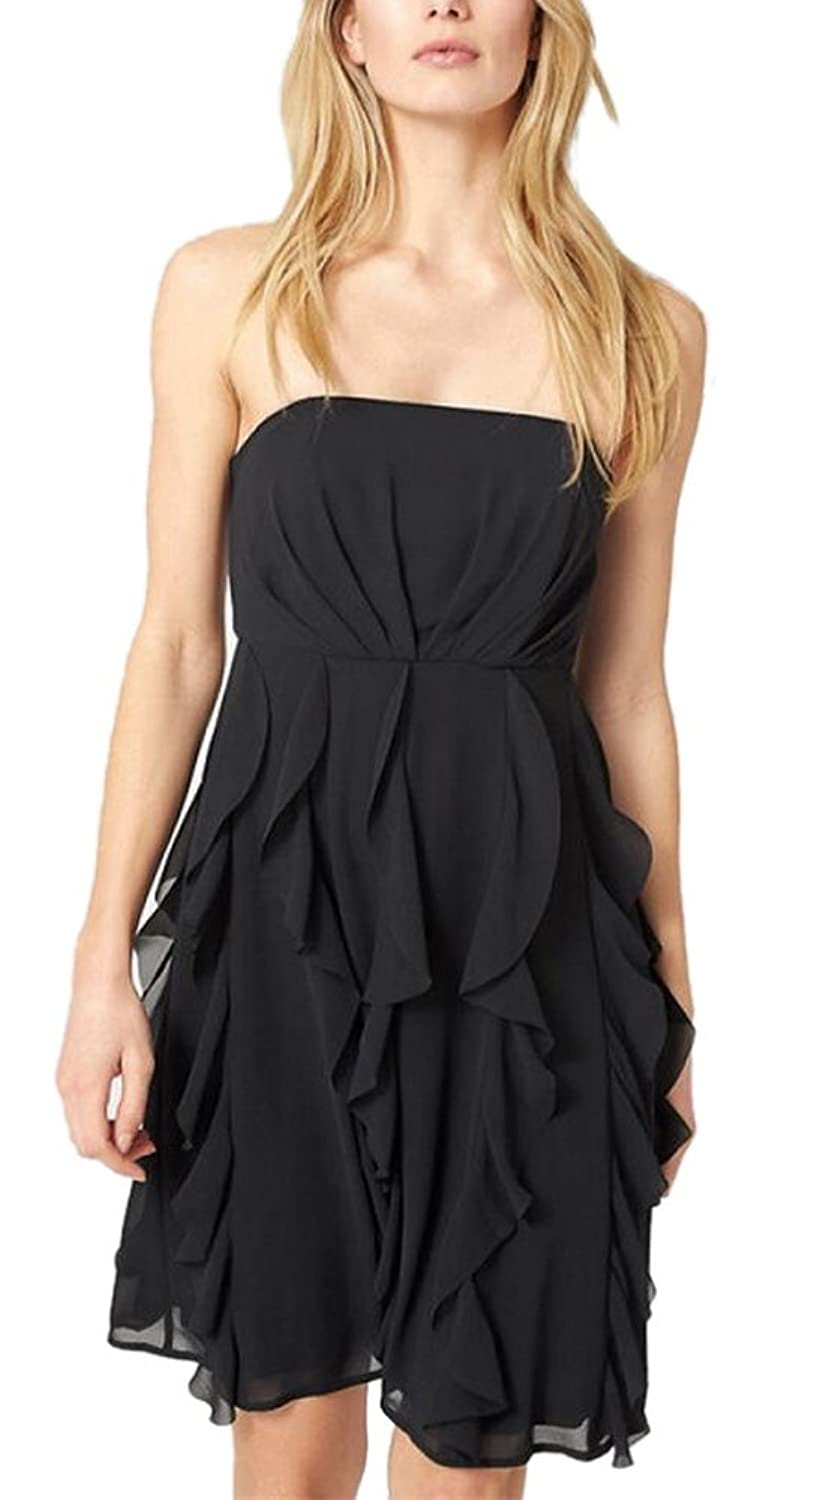 Allbebe Women's Flounced Chiffon Sexy Strapless Party Dress Skirt